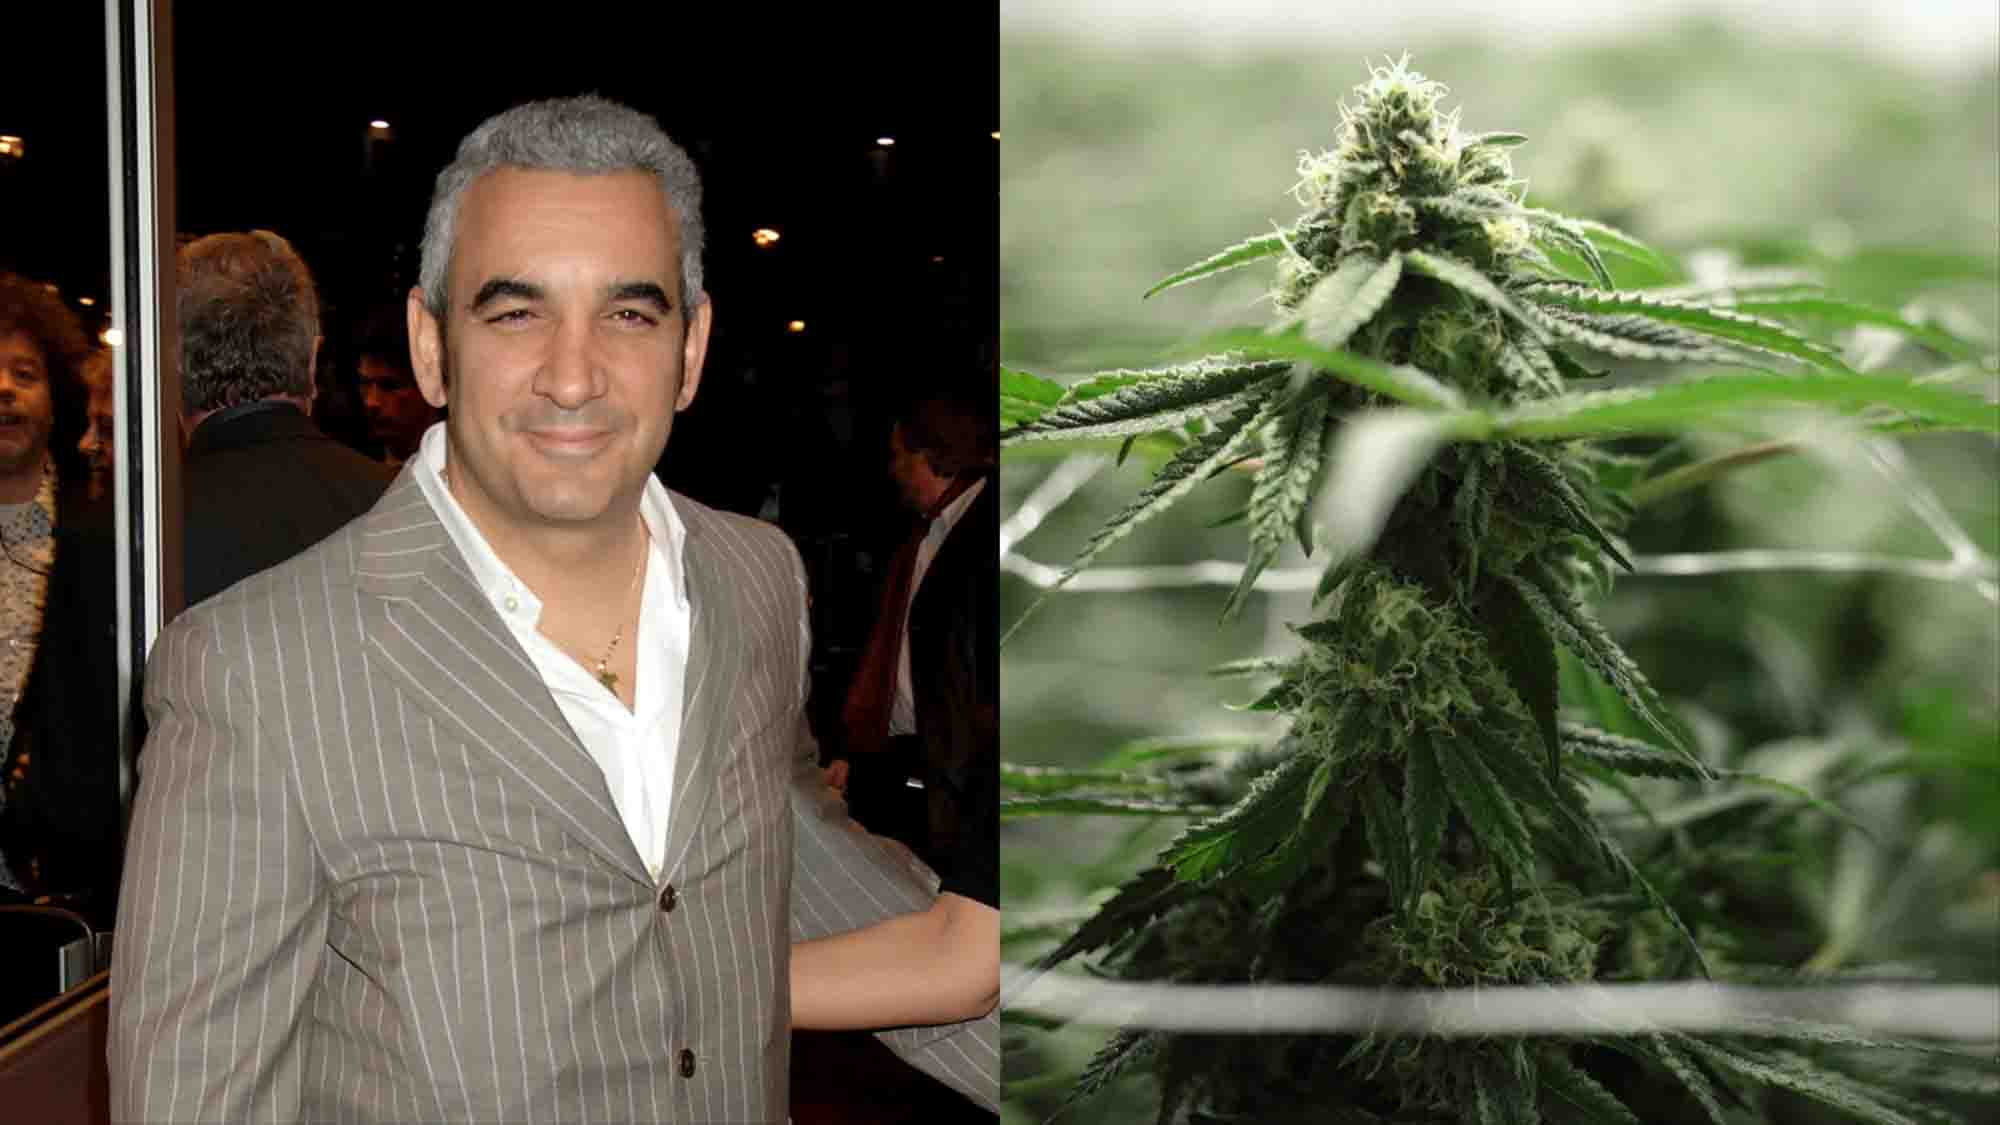 Billionaire arrested for growing weed